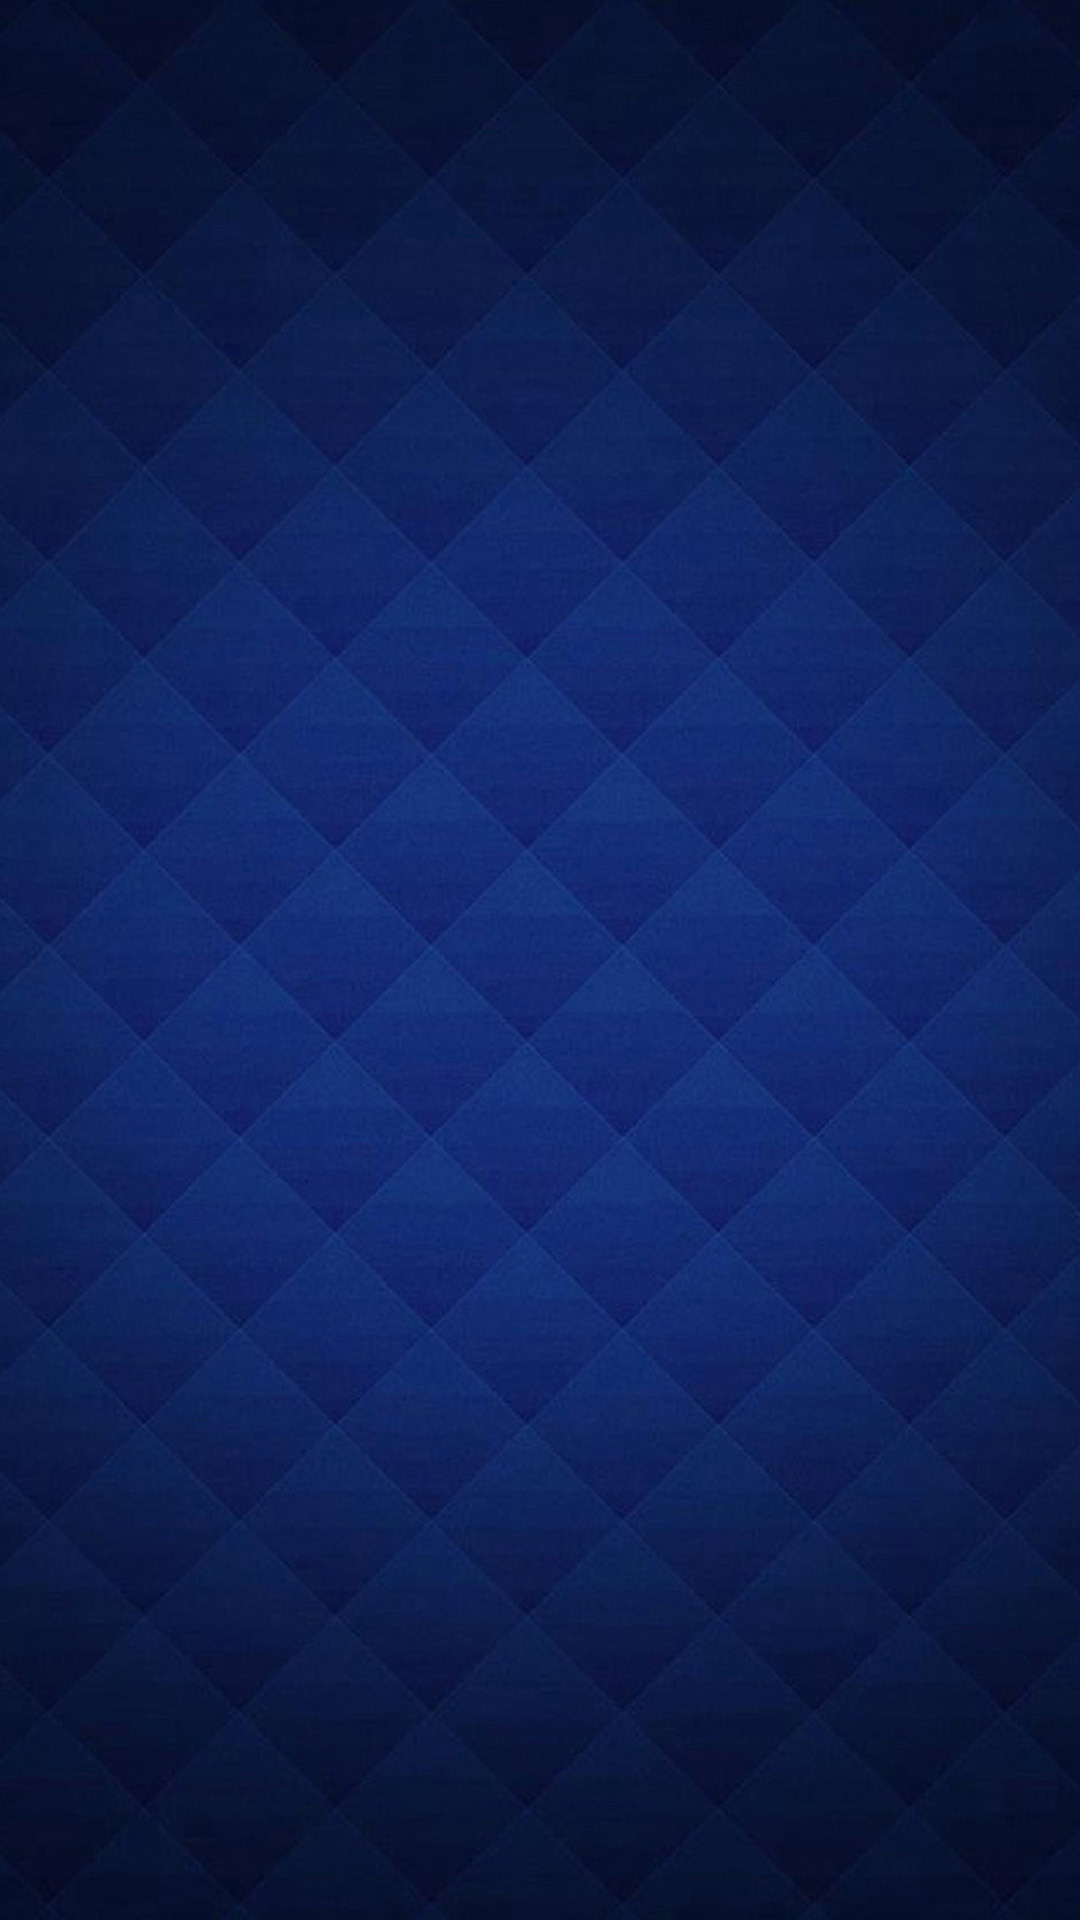 Light blue texture wallpaper 51 images - Dark blue wallpaper hd for android ...